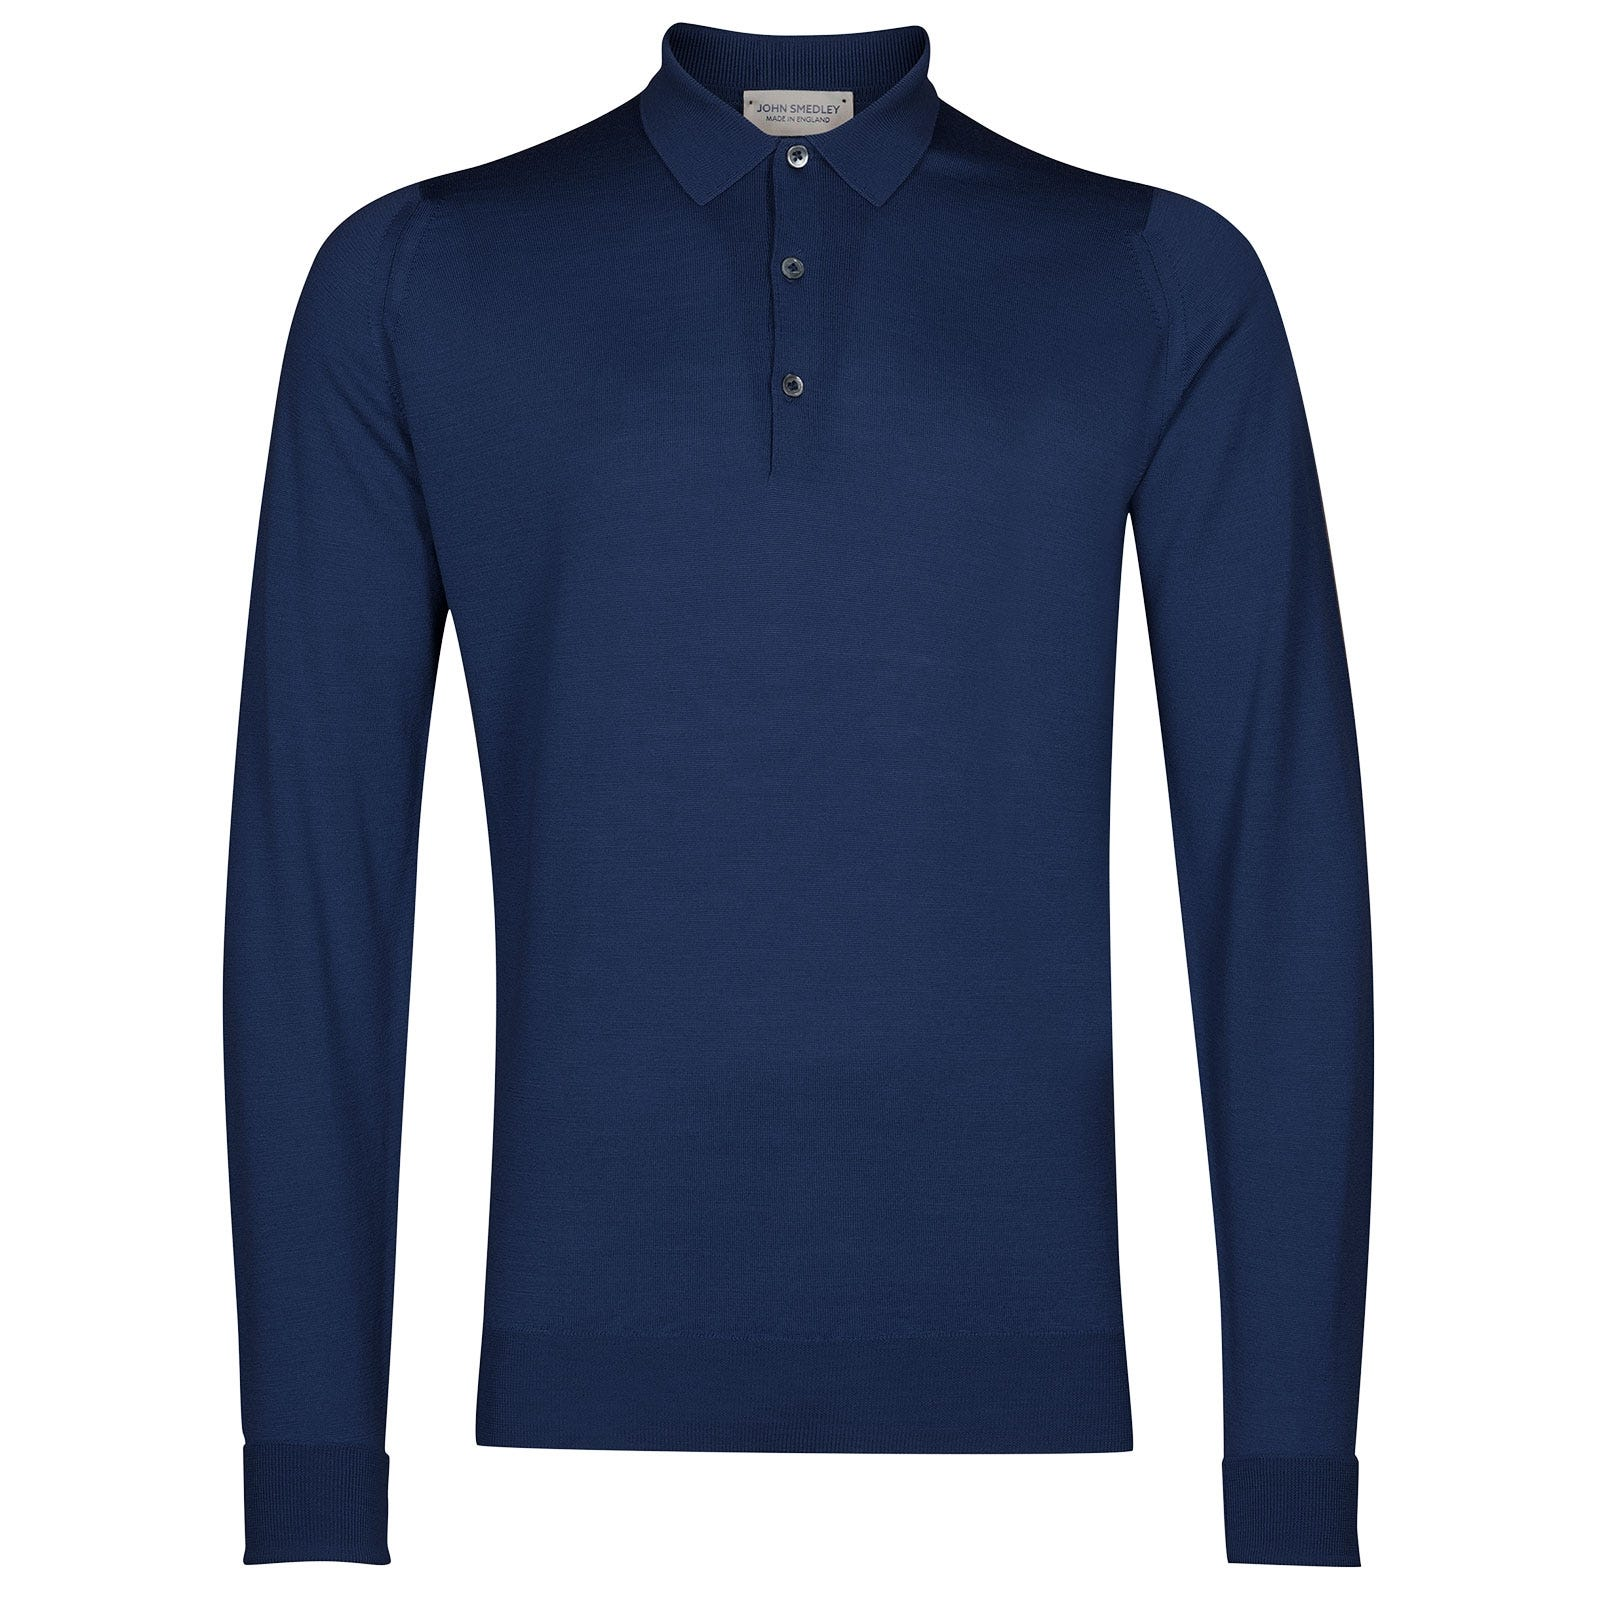 John Smedley Cotswold Merino Wool Shirt in Magnetic Cobalt-L